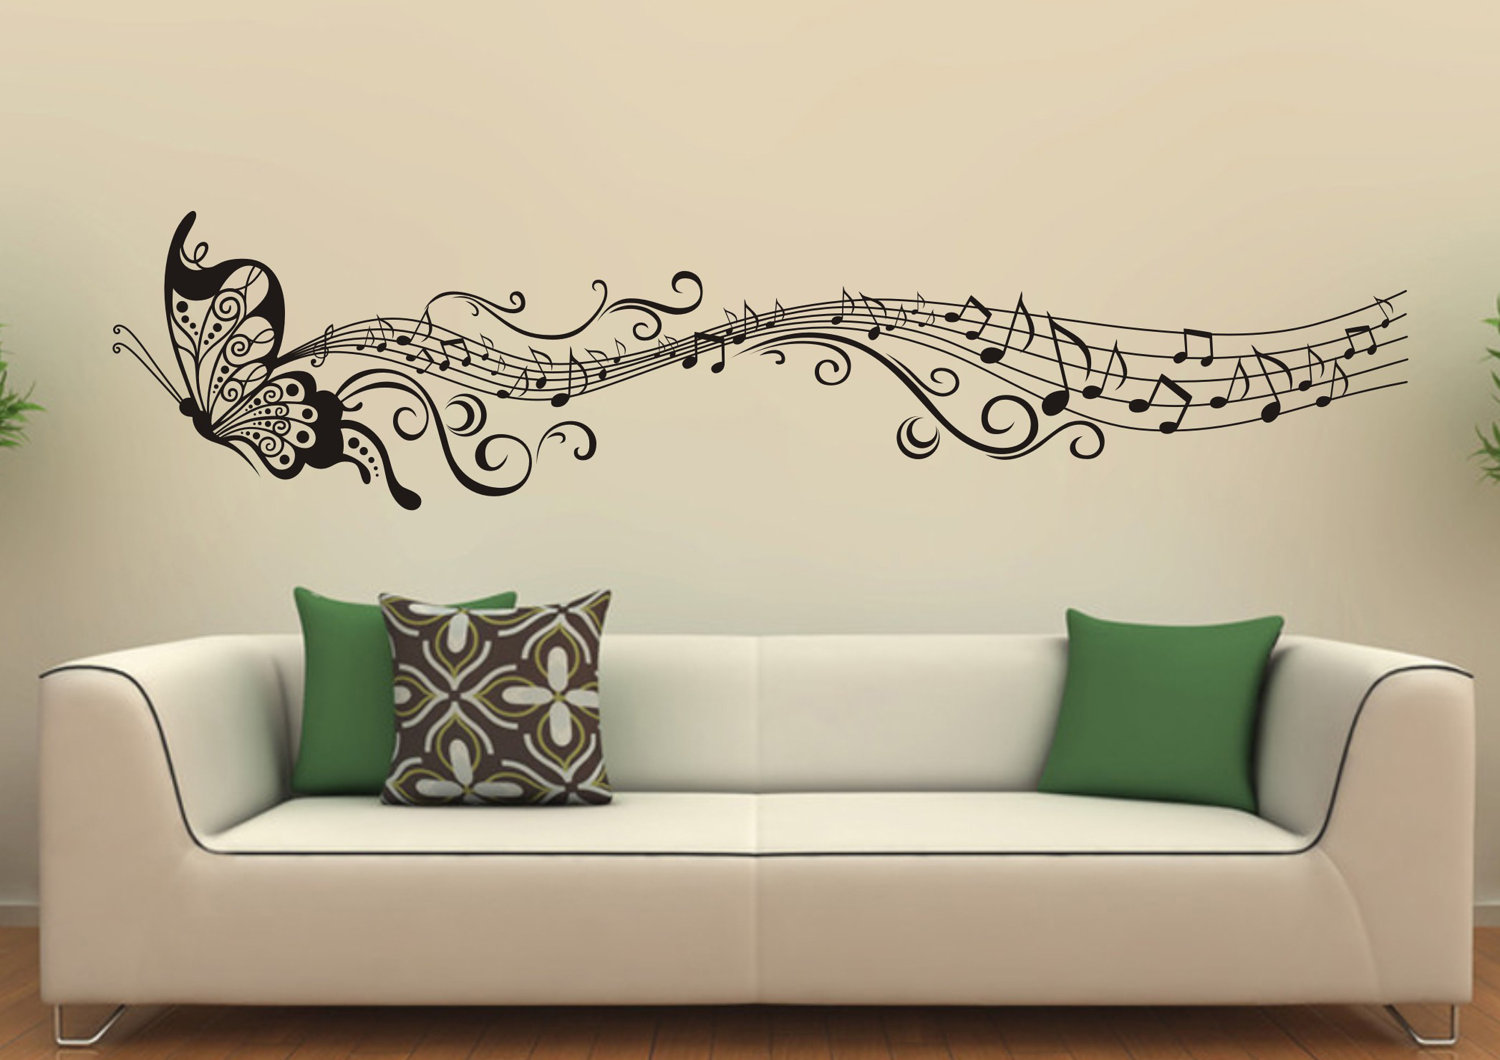 30 UNIQUE WALL DECOR IDEAS......